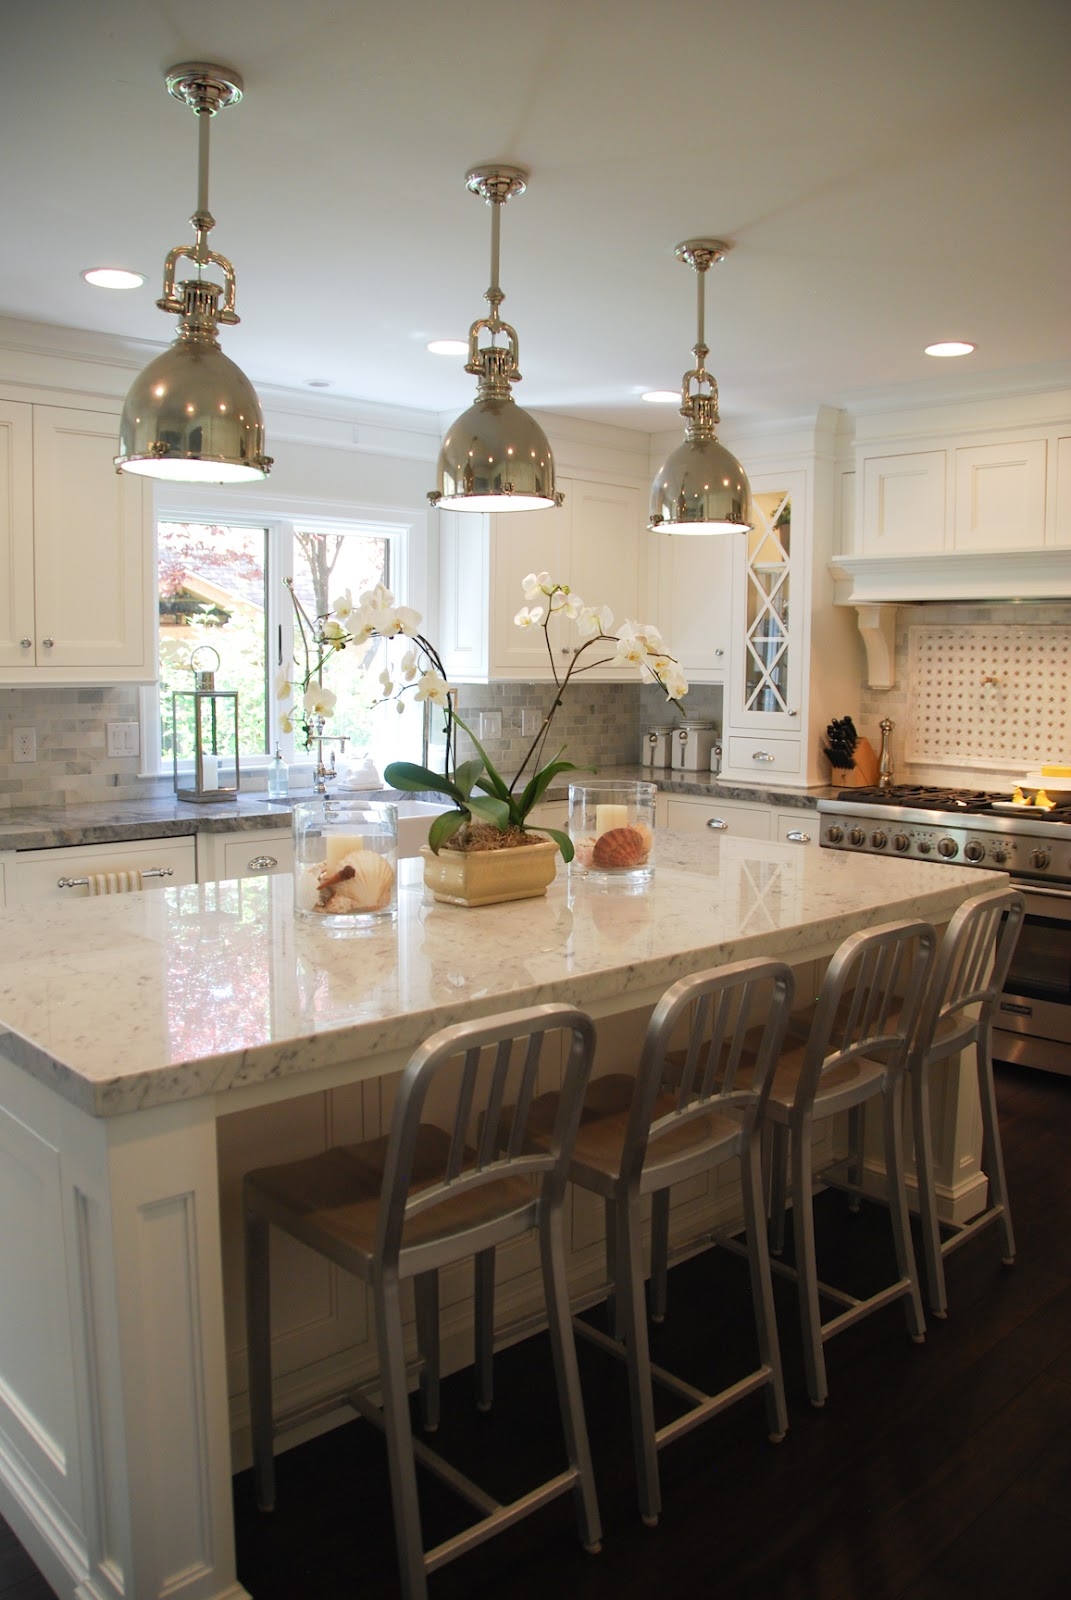 The granite gurus whiteout wednesday 5 white kitchens with super - Photo Mgs By Design